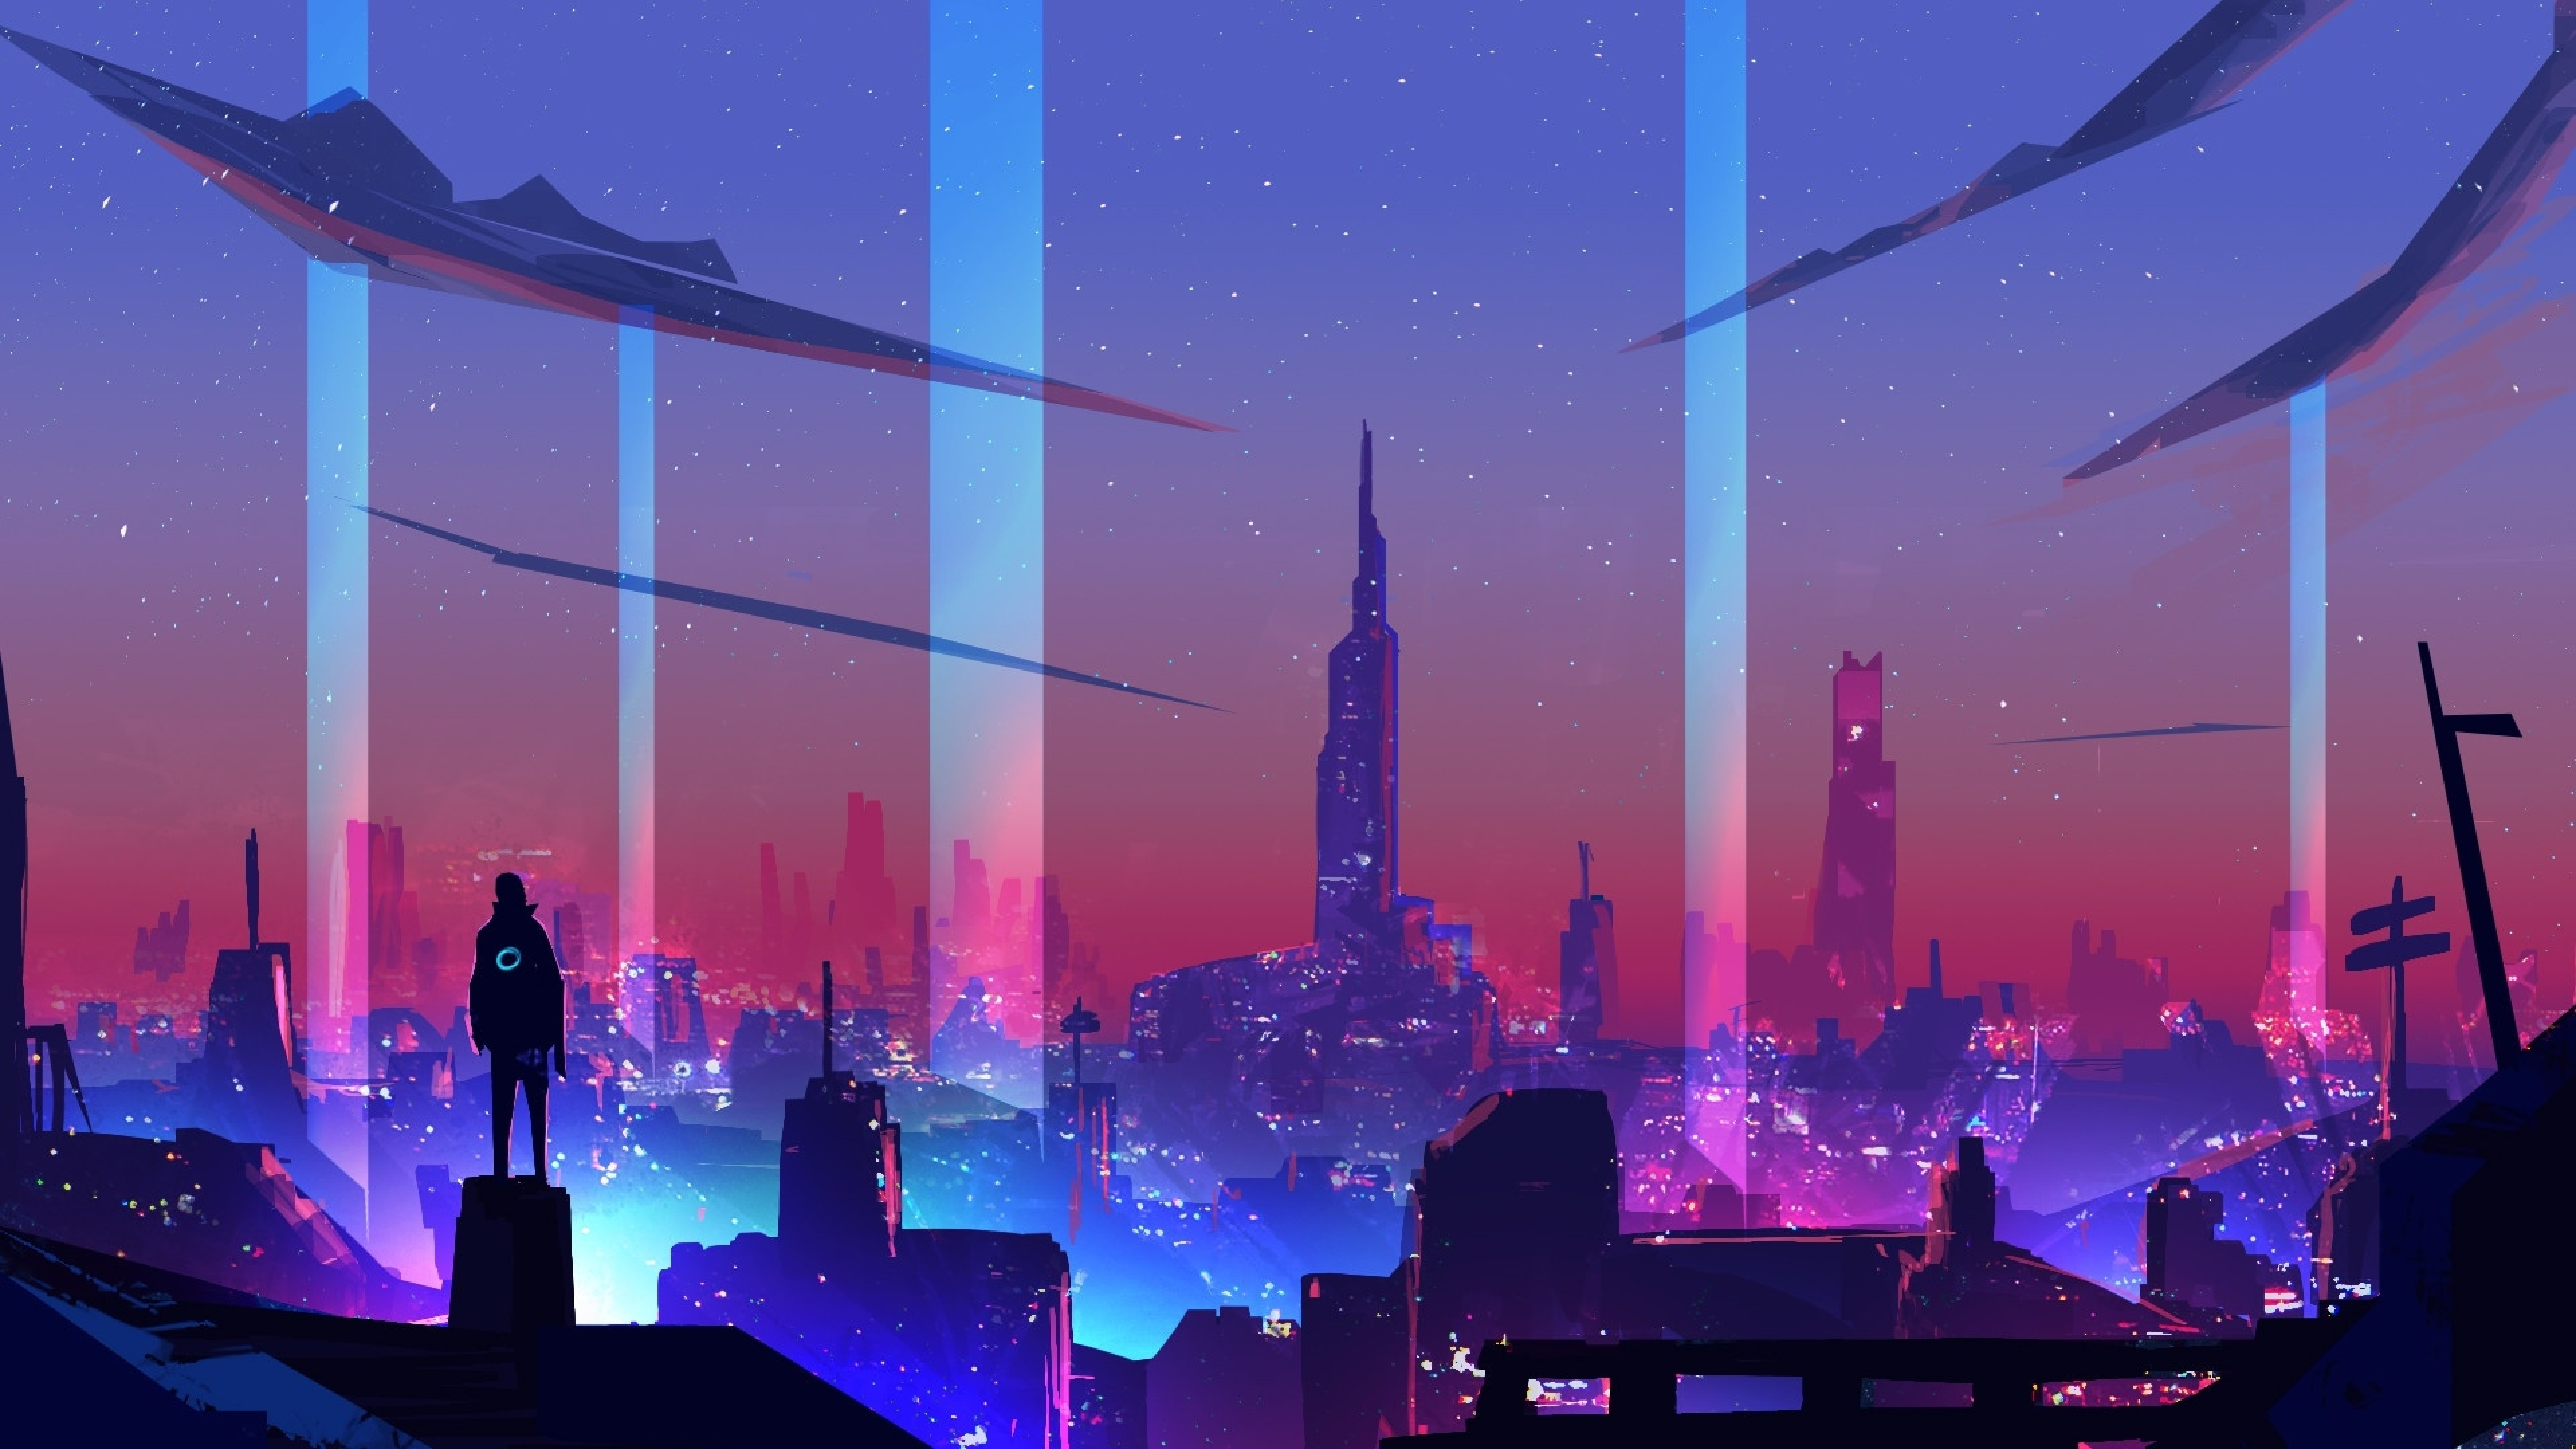 3840x2160 Neon Wave Futuristic City 4K